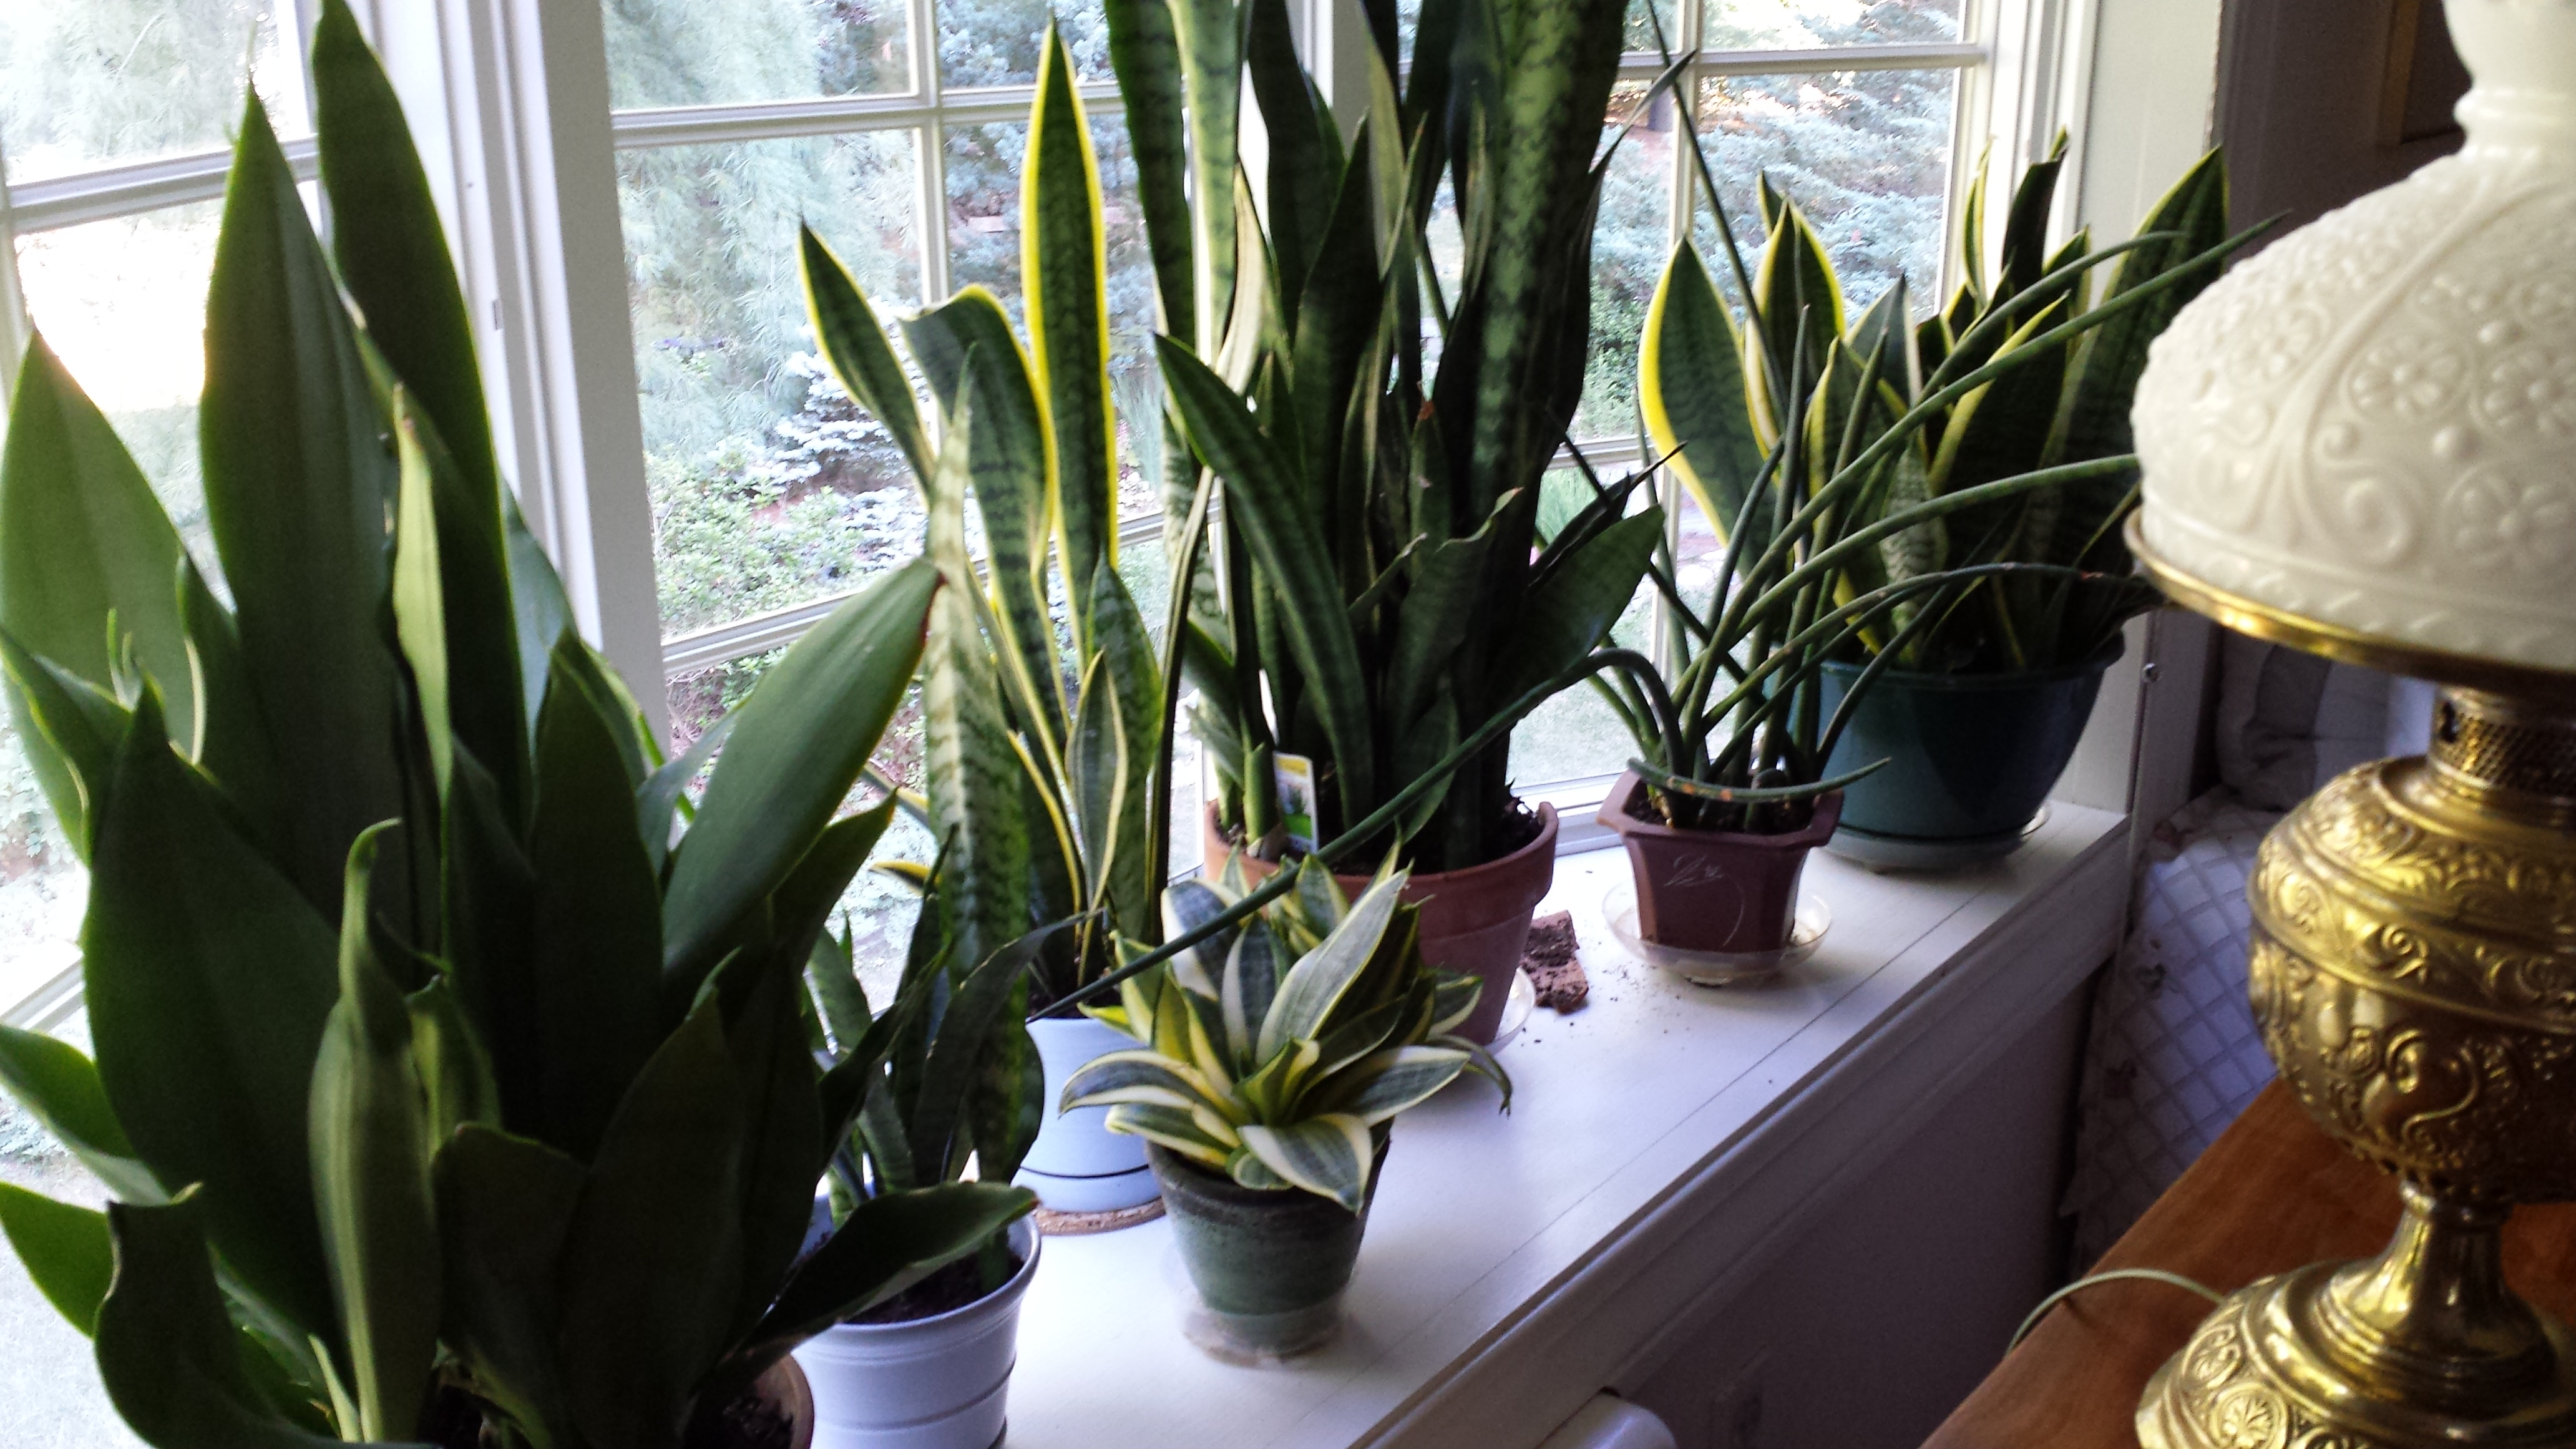 Easy Care Plants For A West Window Gardendaze